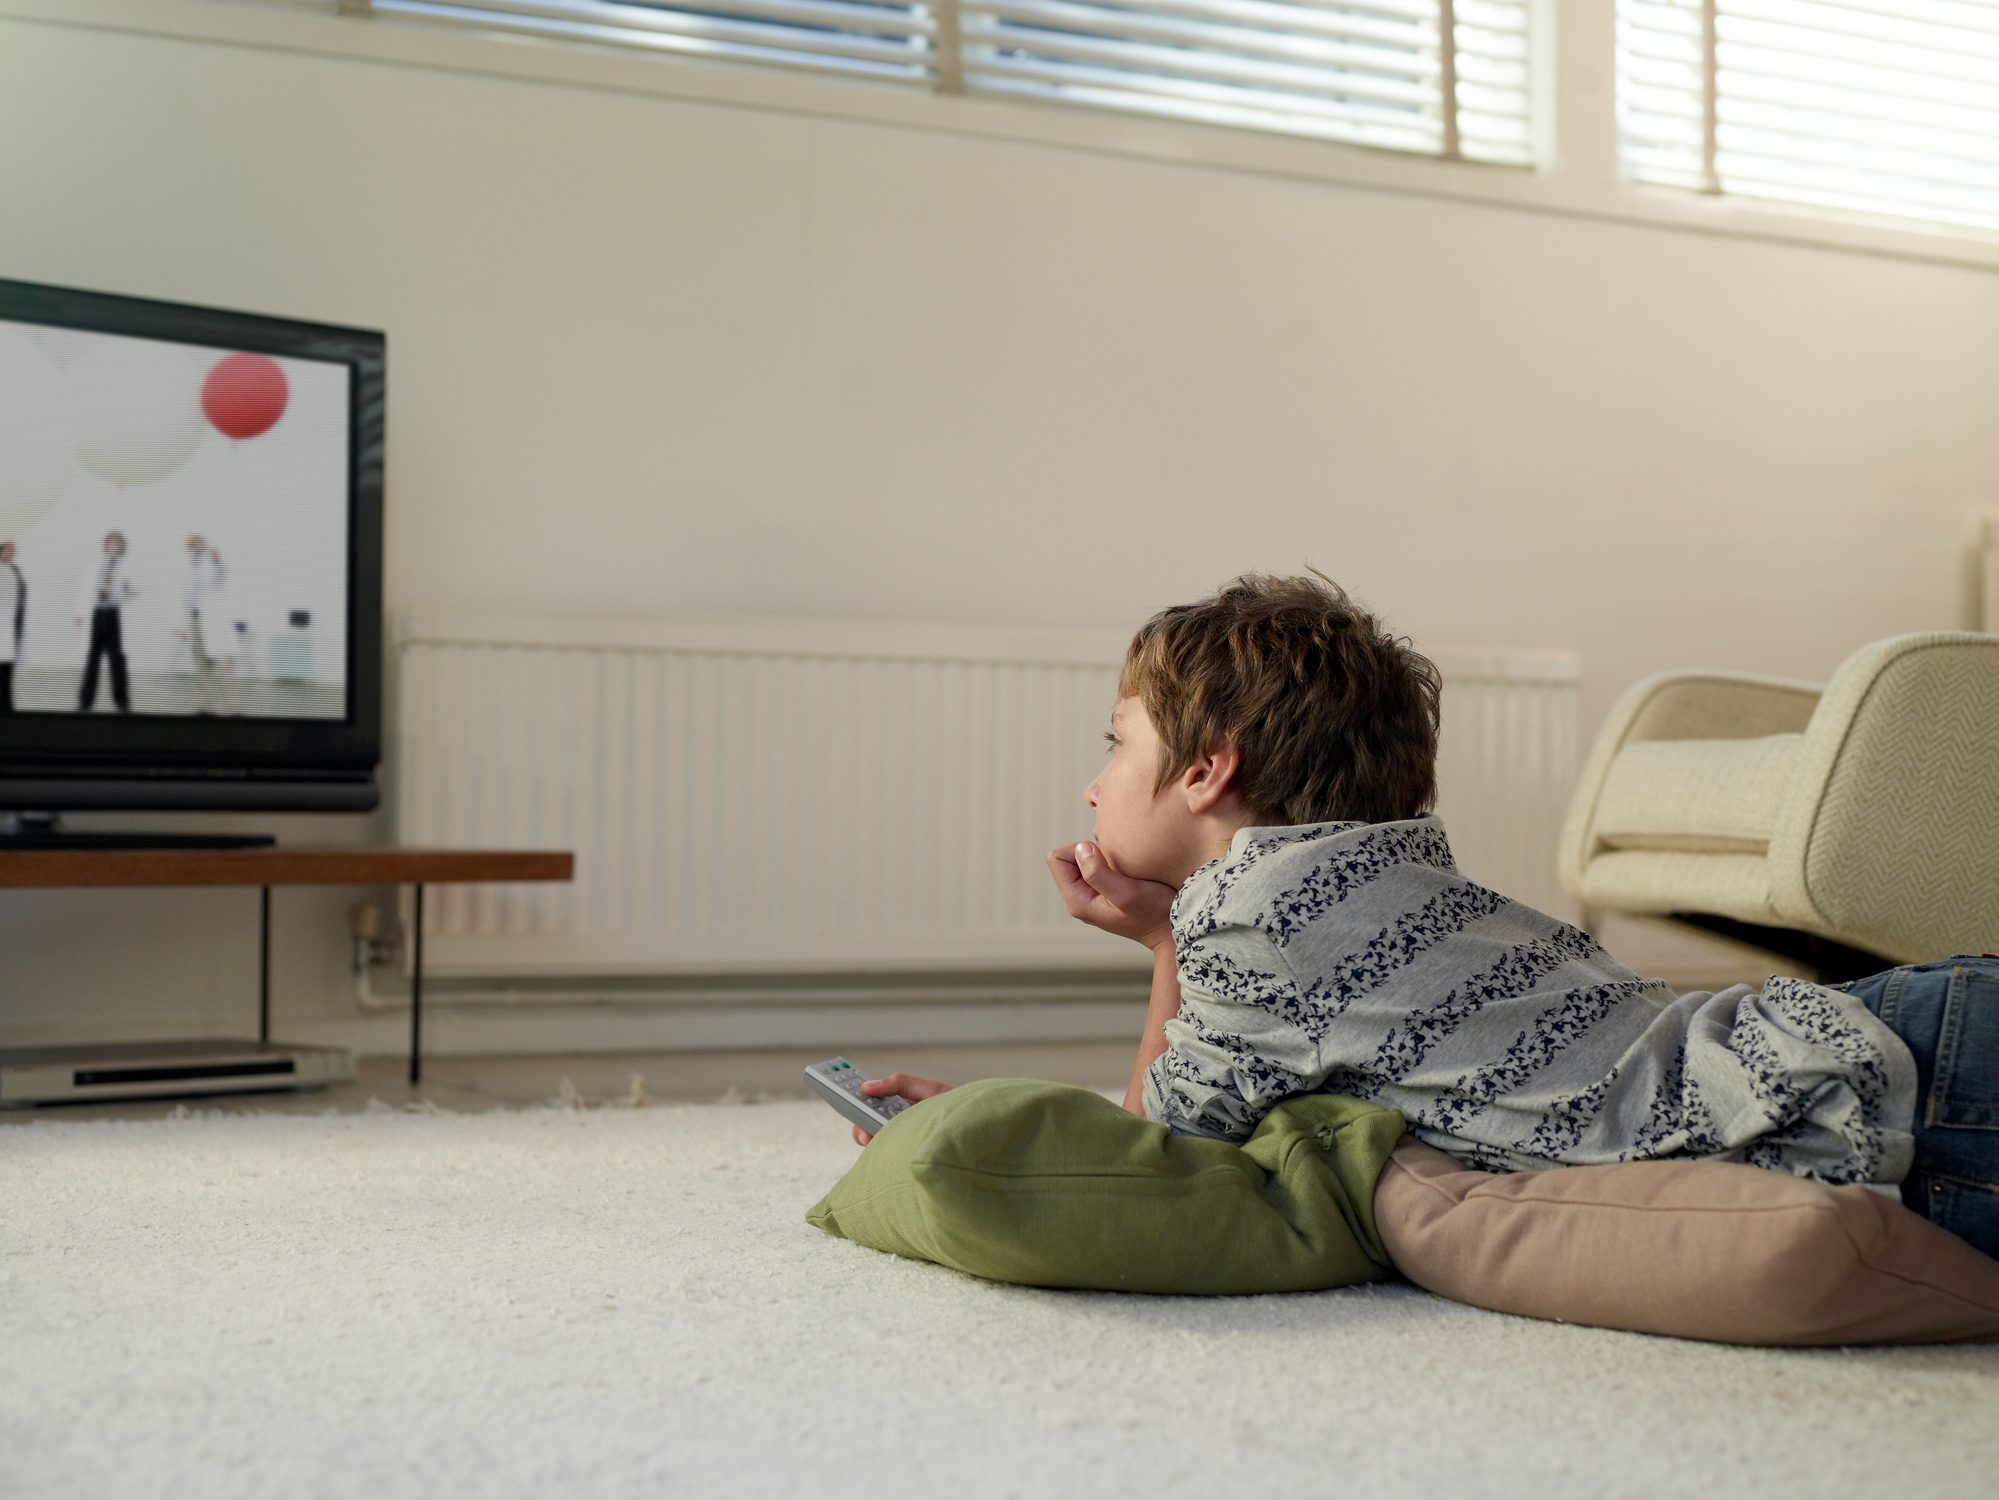 boy lying on floor watching television